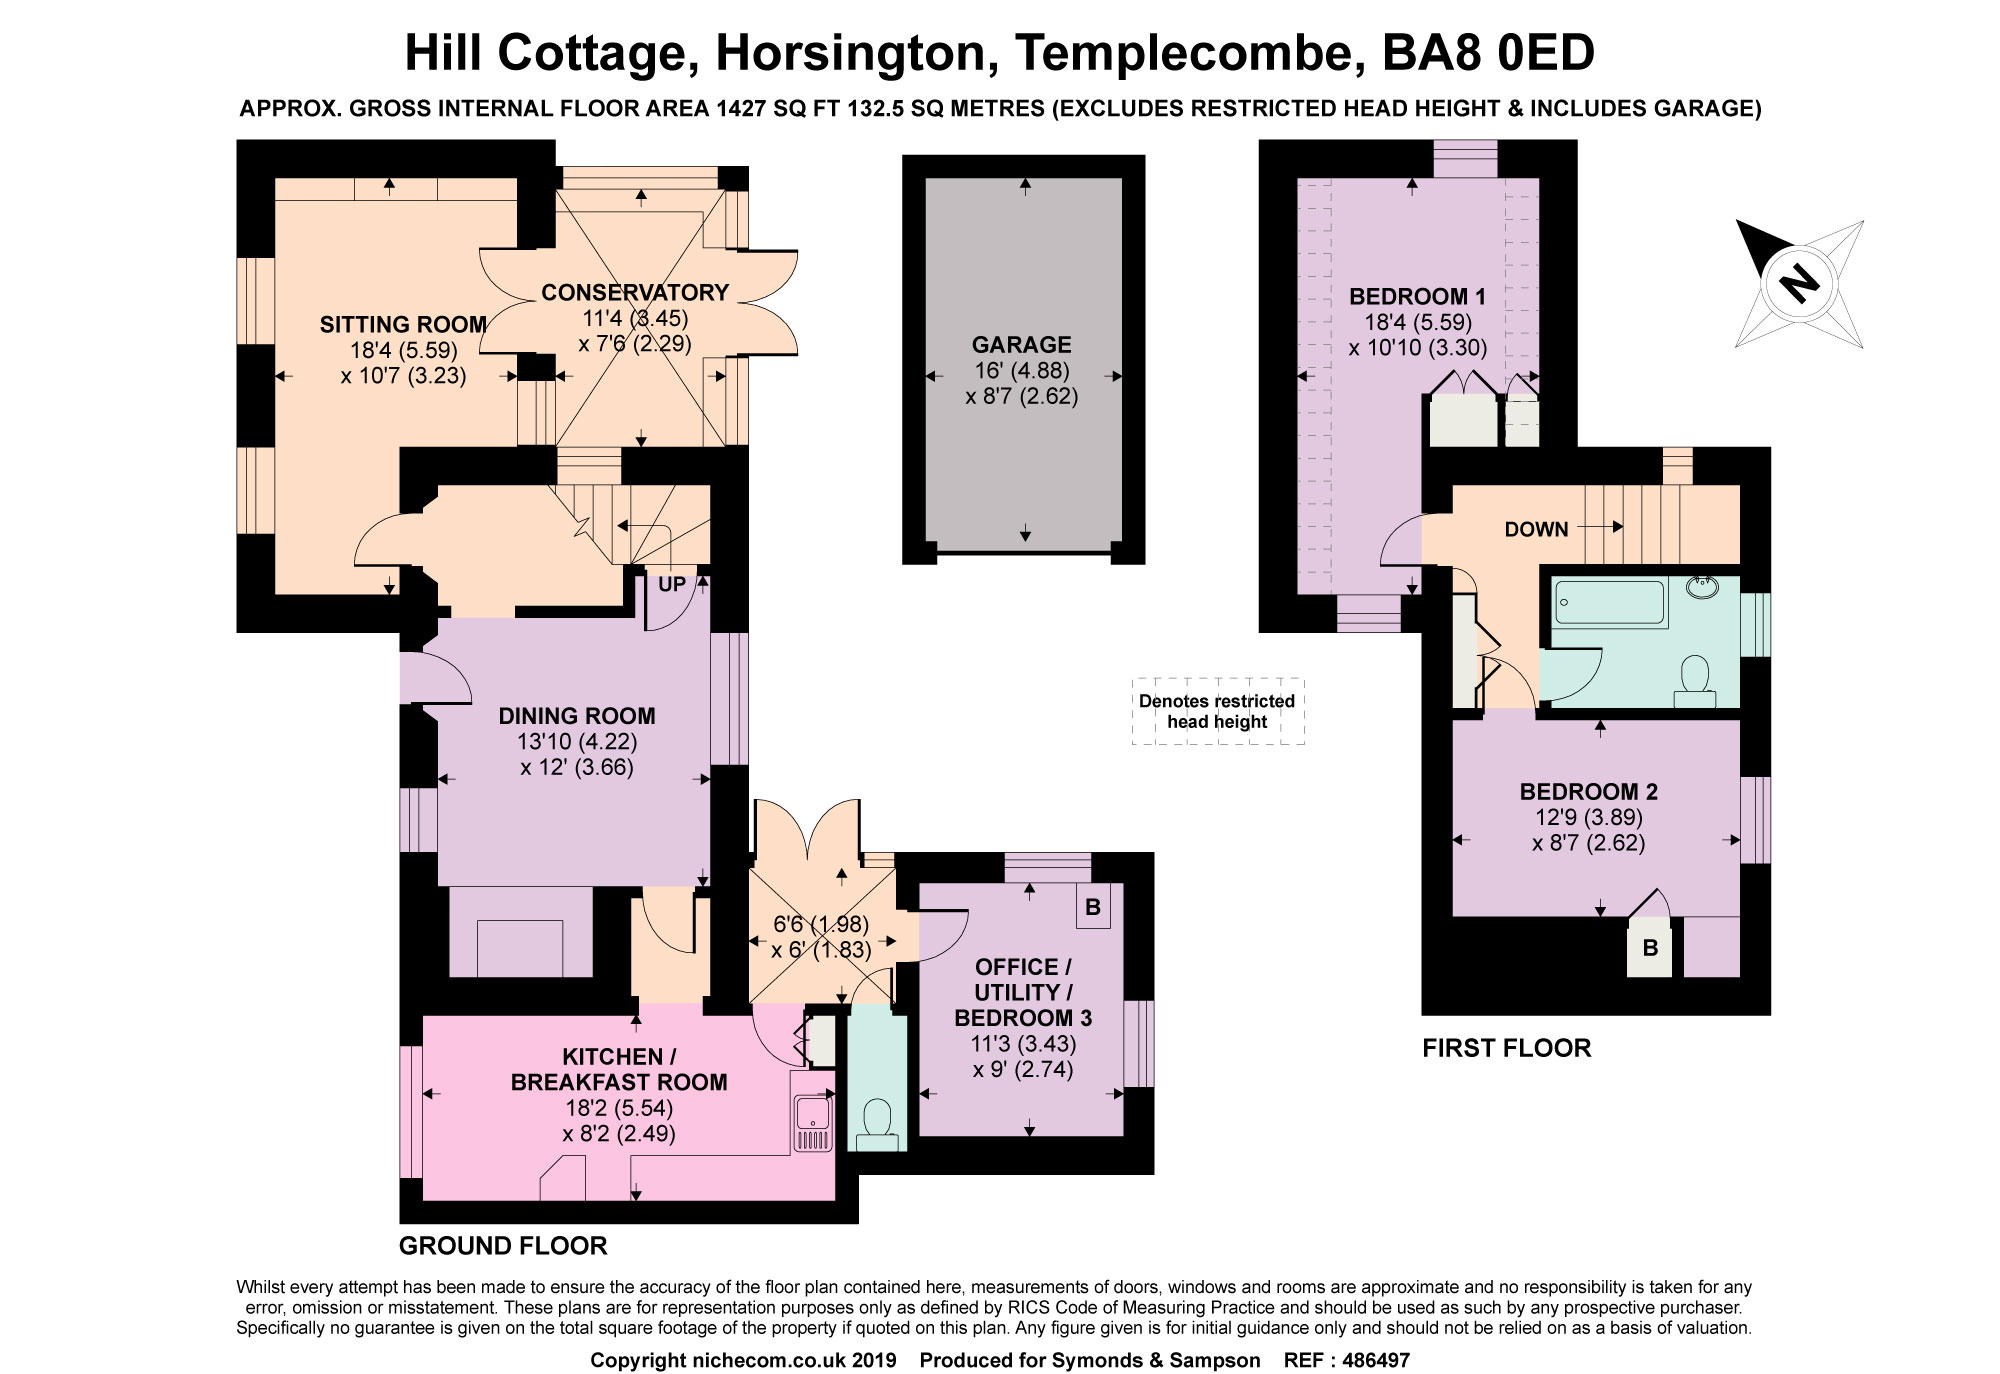 3 Bedrooms Detached house for sale in Horsington, Templecombe, Somerset BA8